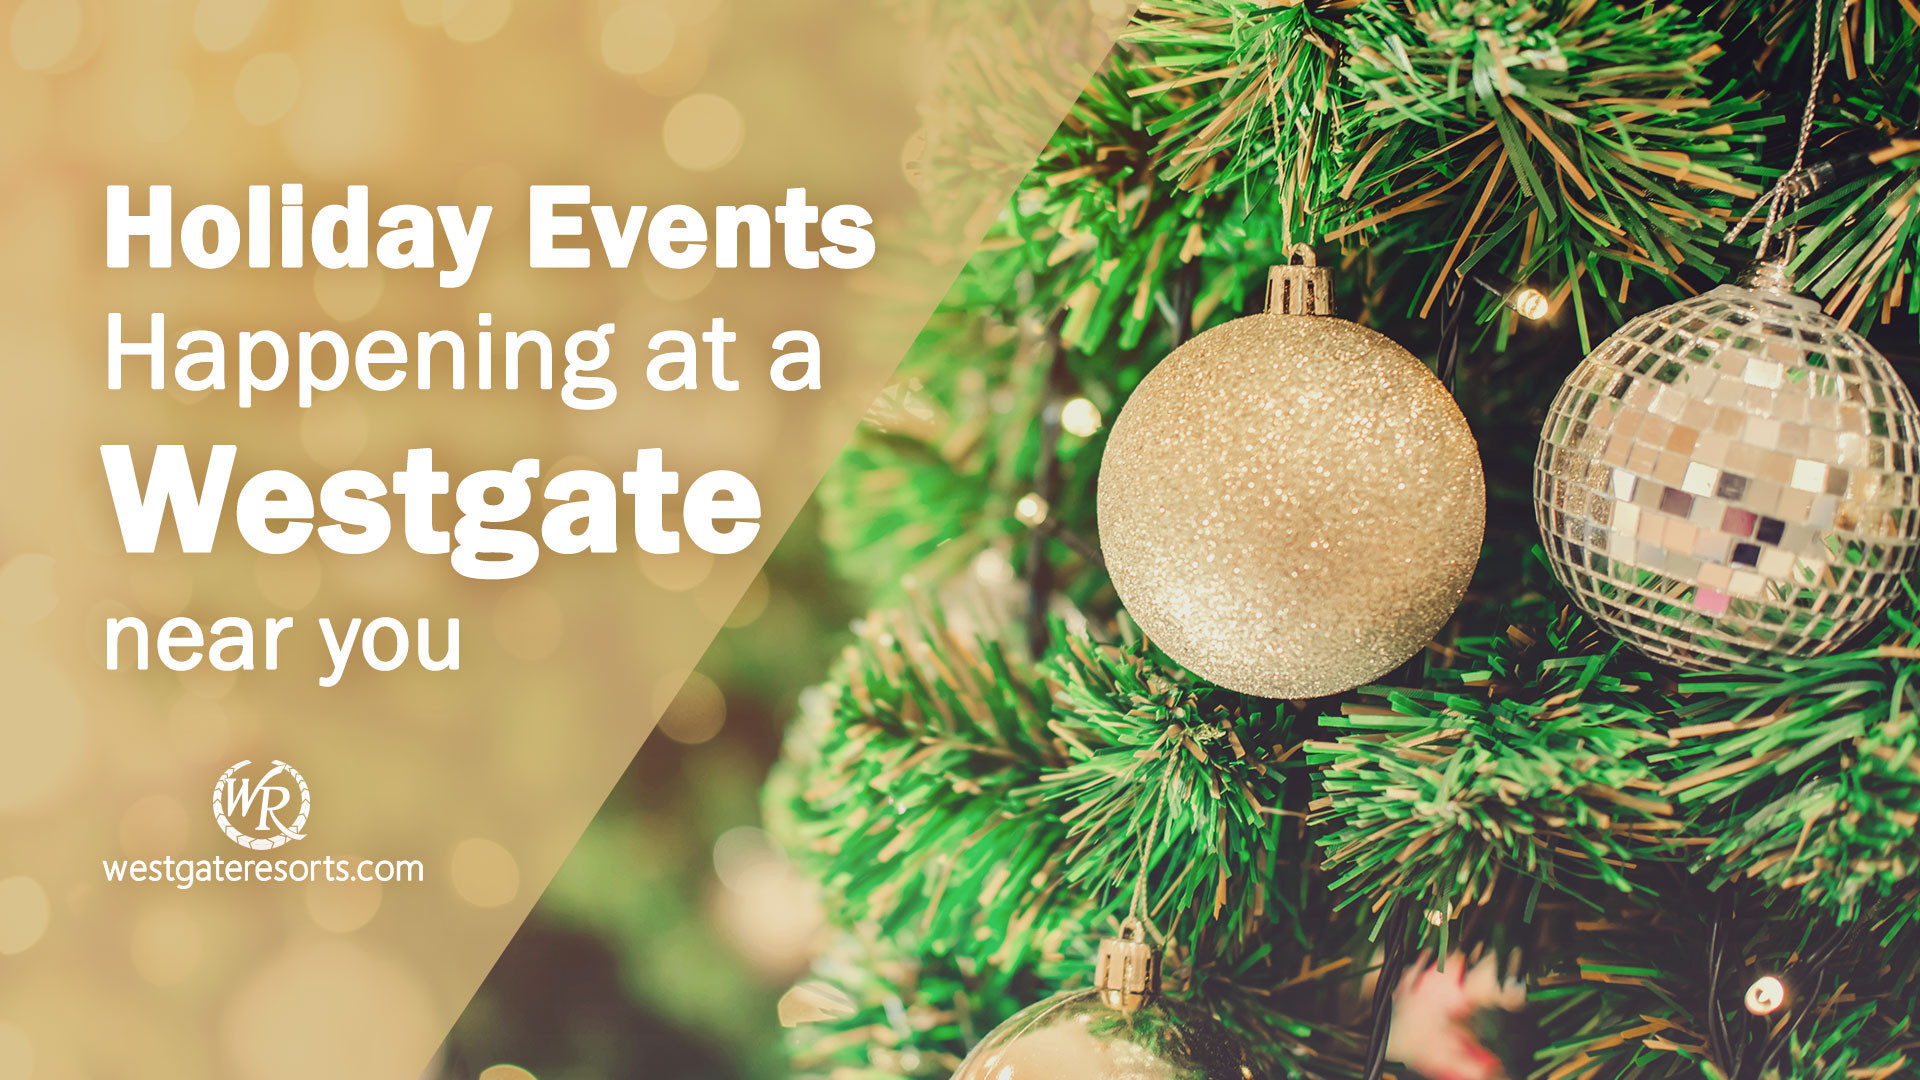 Holiday Events Happening at a Westgate Near You | Holiday Events While Traveling